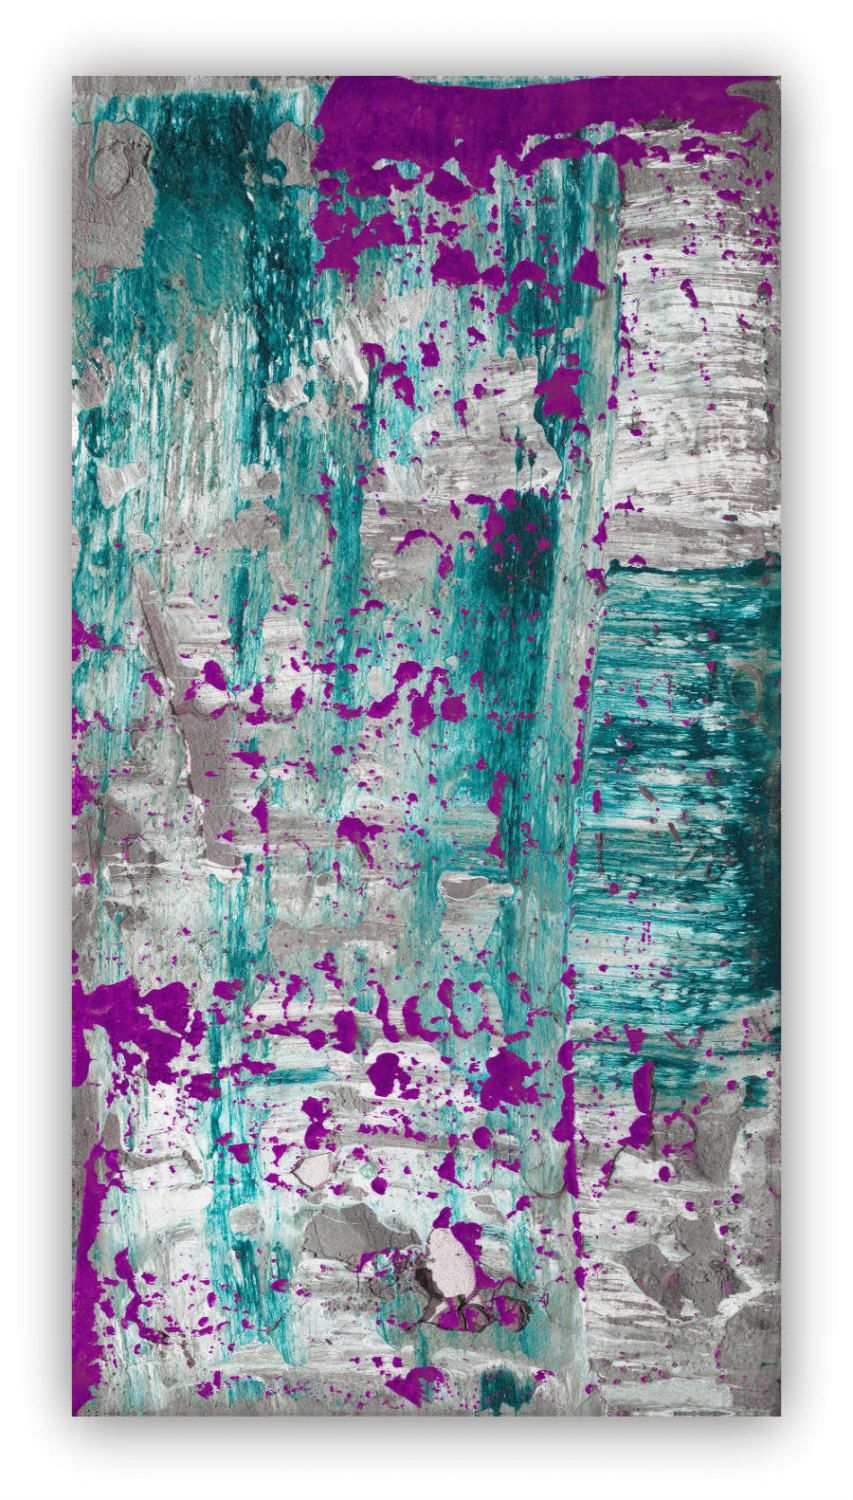 abstract painting large wall art canvas art purple plum grey gray blue turquoise teal concrete. Black Bedroom Furniture Sets. Home Design Ideas